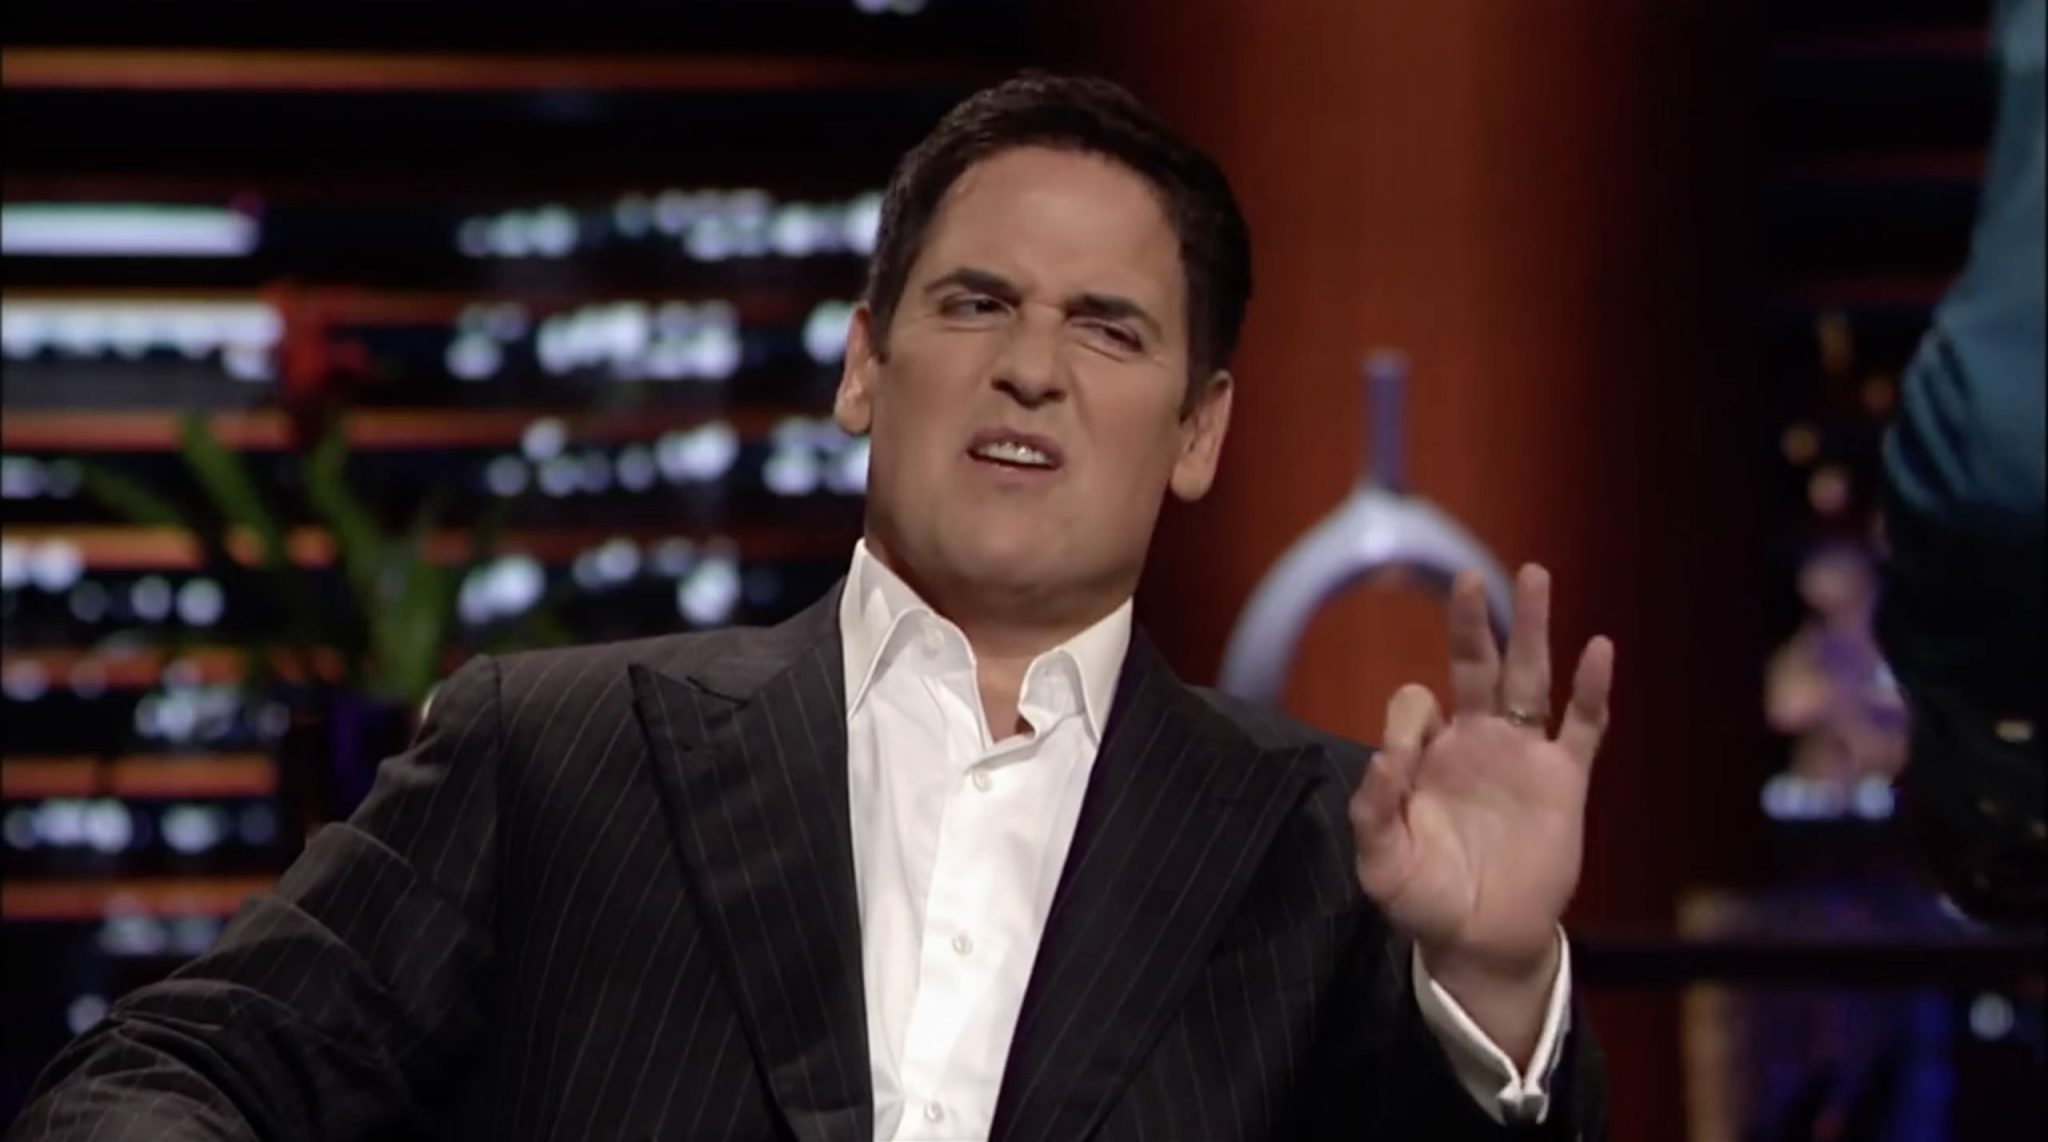 be nice in business says Mark Cuban